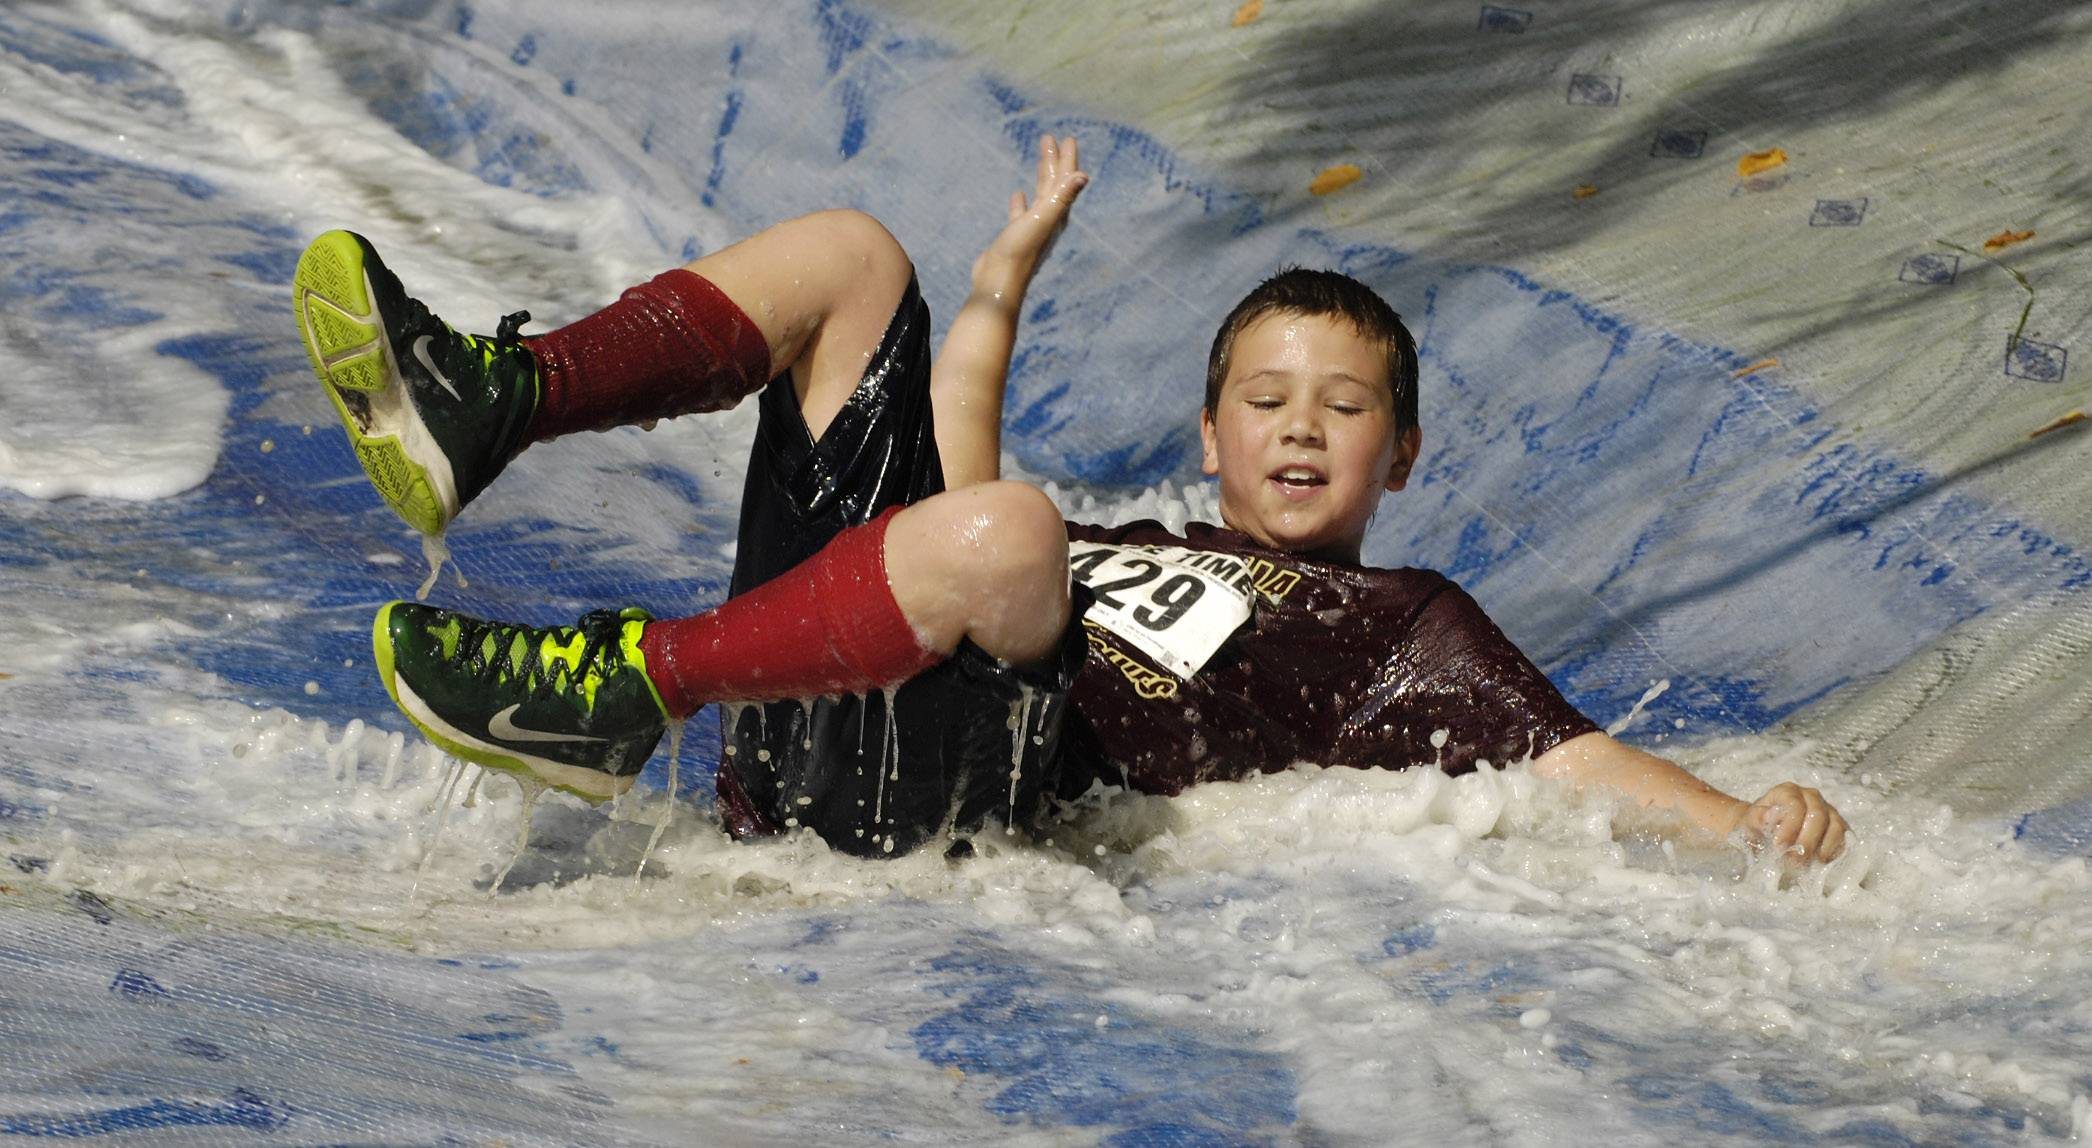 Connor Kozanecki, 10, of Lindenhurst goes down the water slide near the finish of Saturday's Mud Run at Caboose Park in Lake Villa.